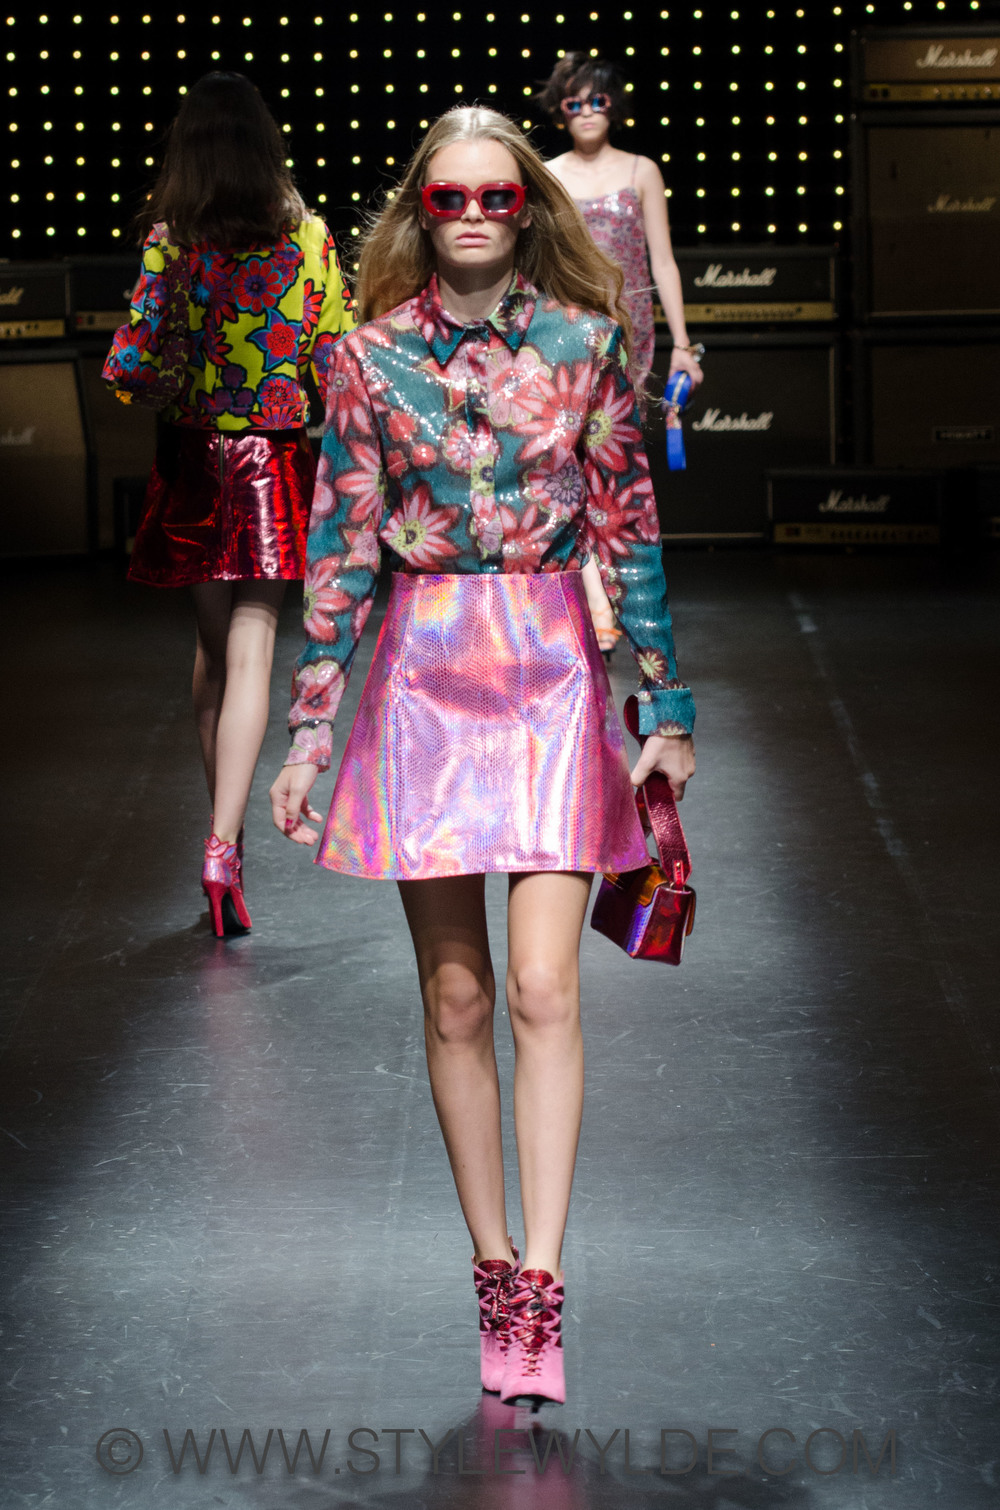 stylewylde_HouseofHolland_SS15 (17 of 68).jpg